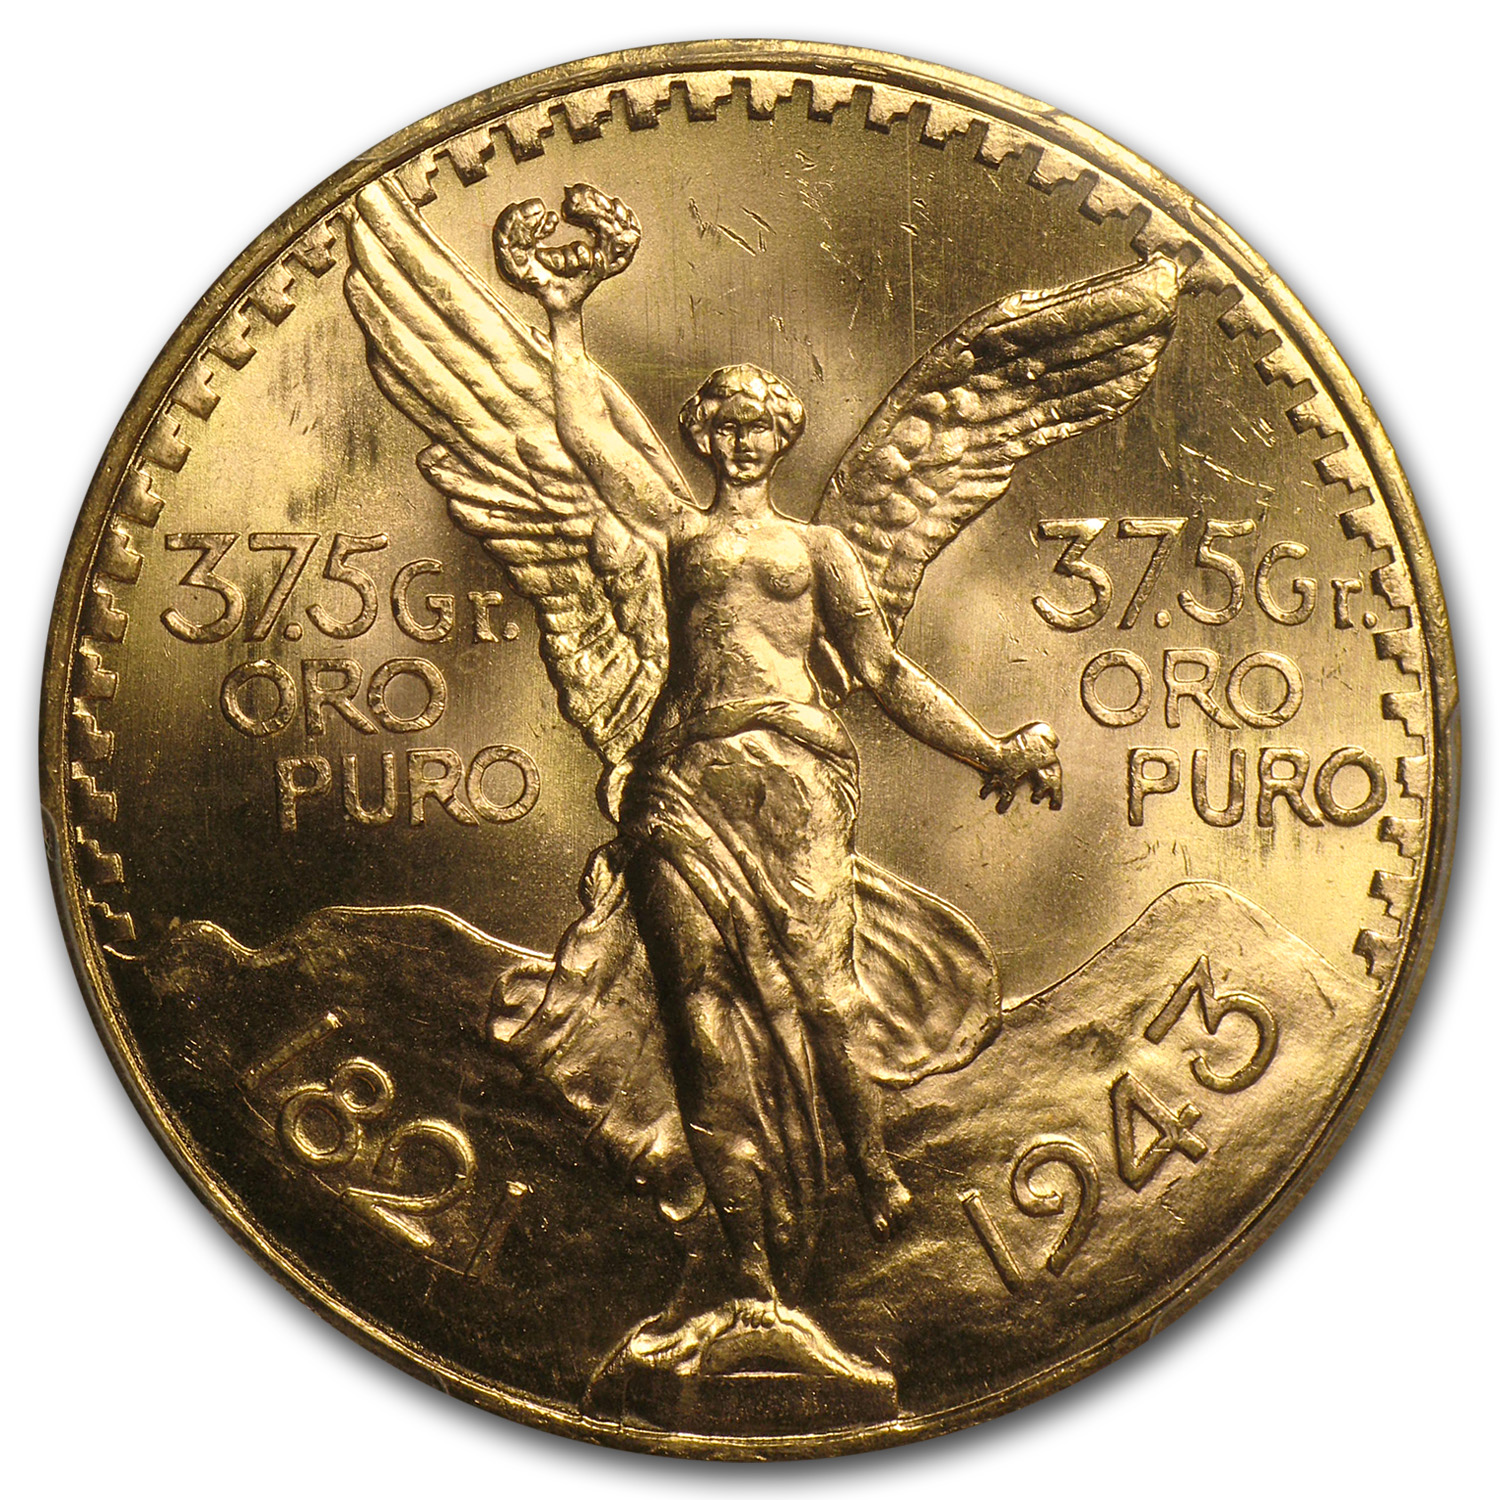 Mexico 1943 50 Pesos Gold Coin - MS-65 PCGS (Secure Plus!)